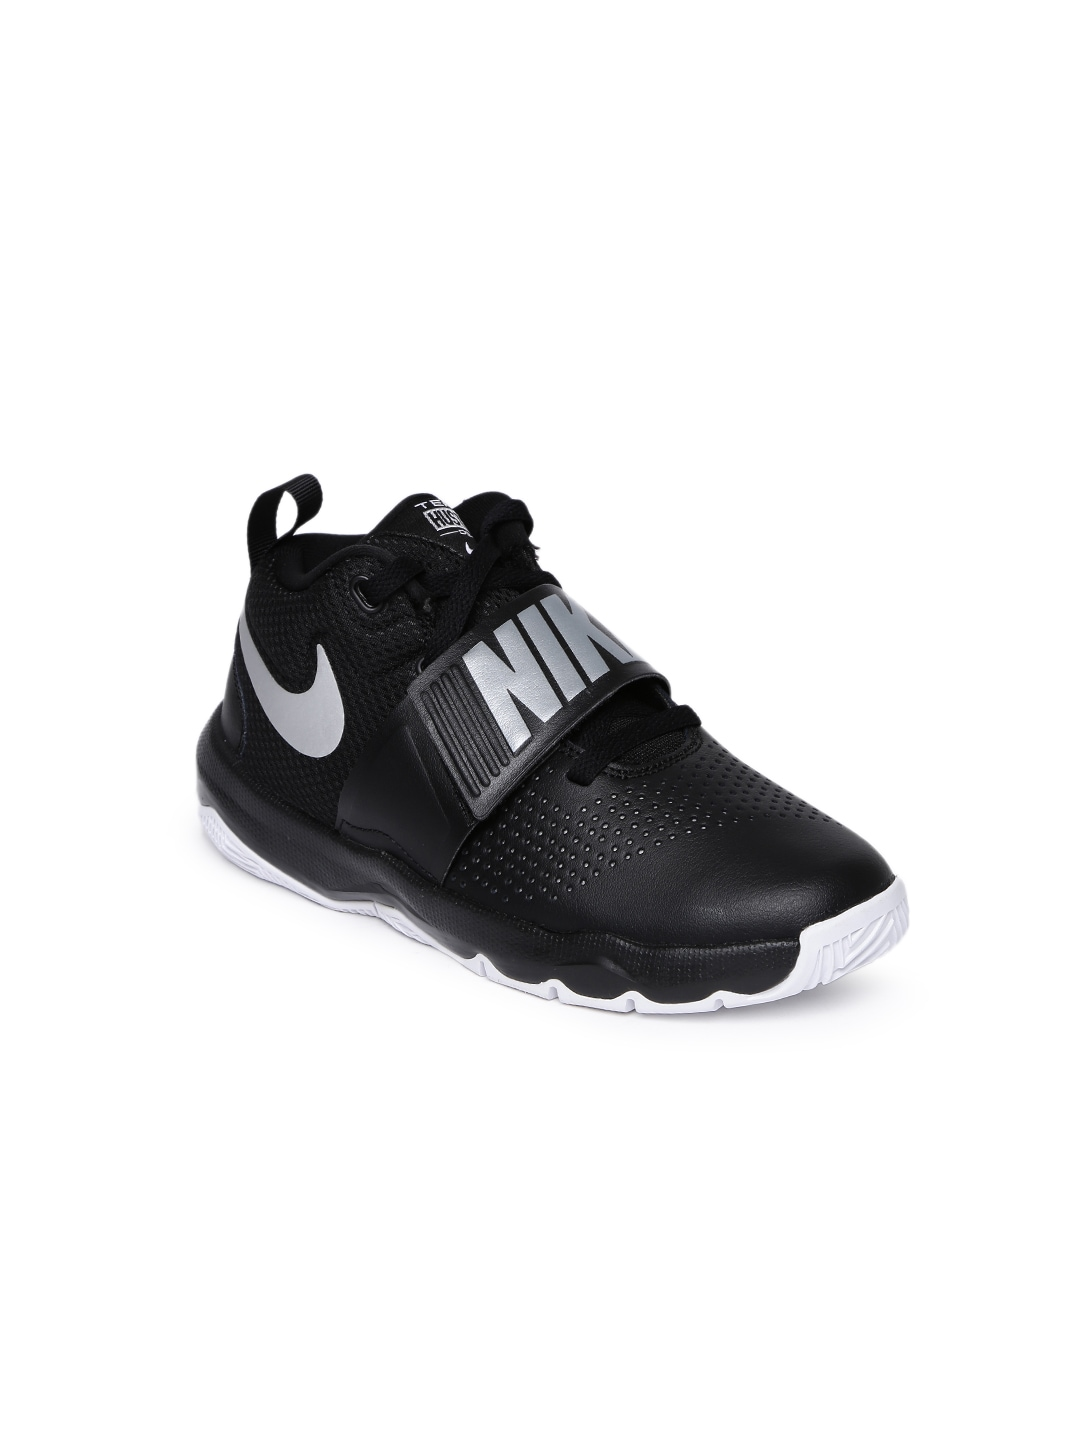 1c38969b6da4d Boy s Nike Shoes - Buy Nike Shoes for Boys Online in India